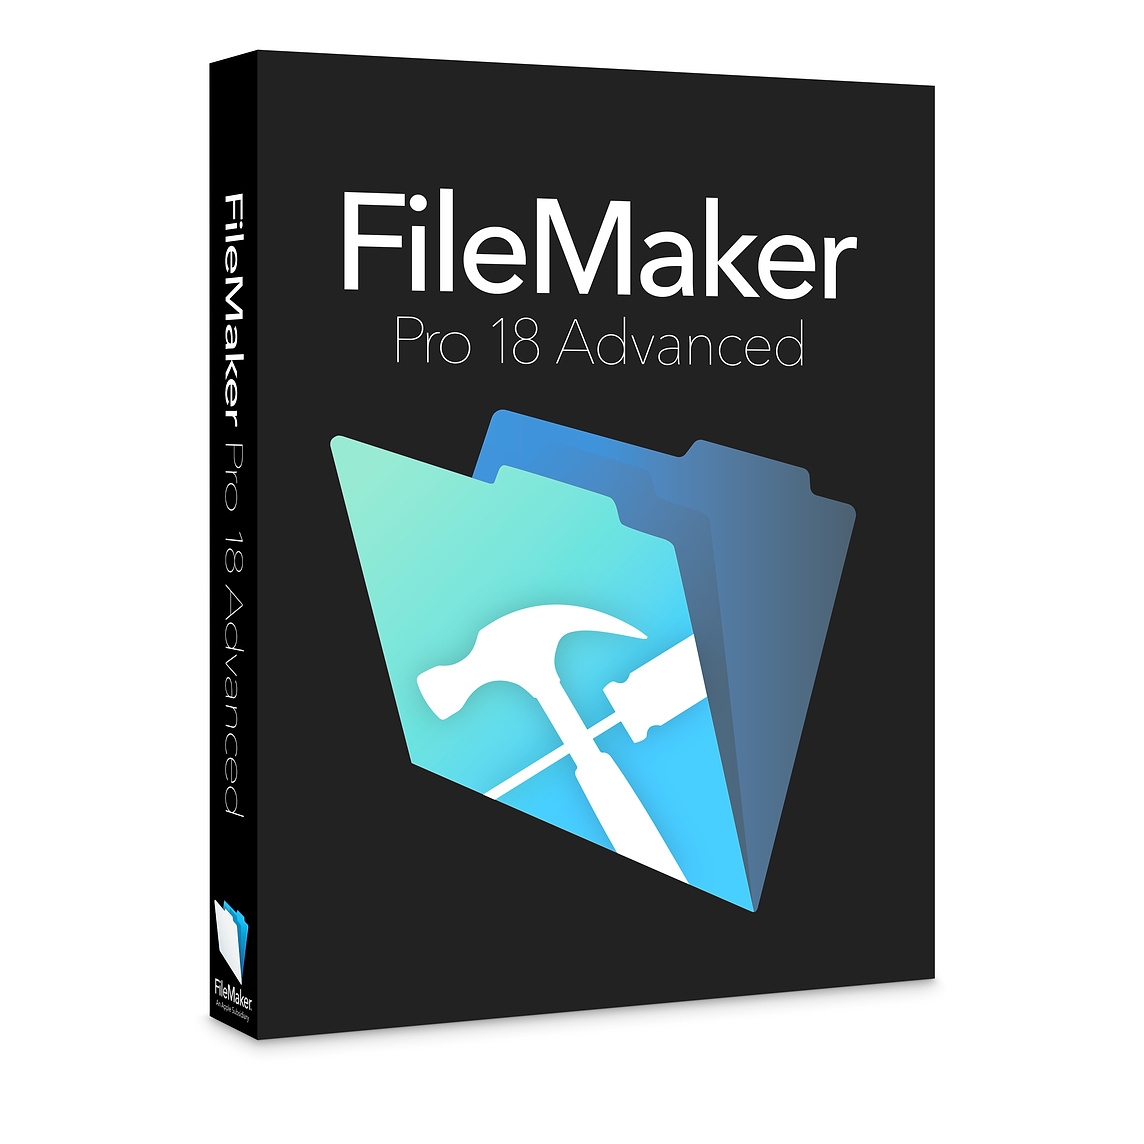 FileMaker Pro 18 Advanced 18.0.3.317 [Latest]